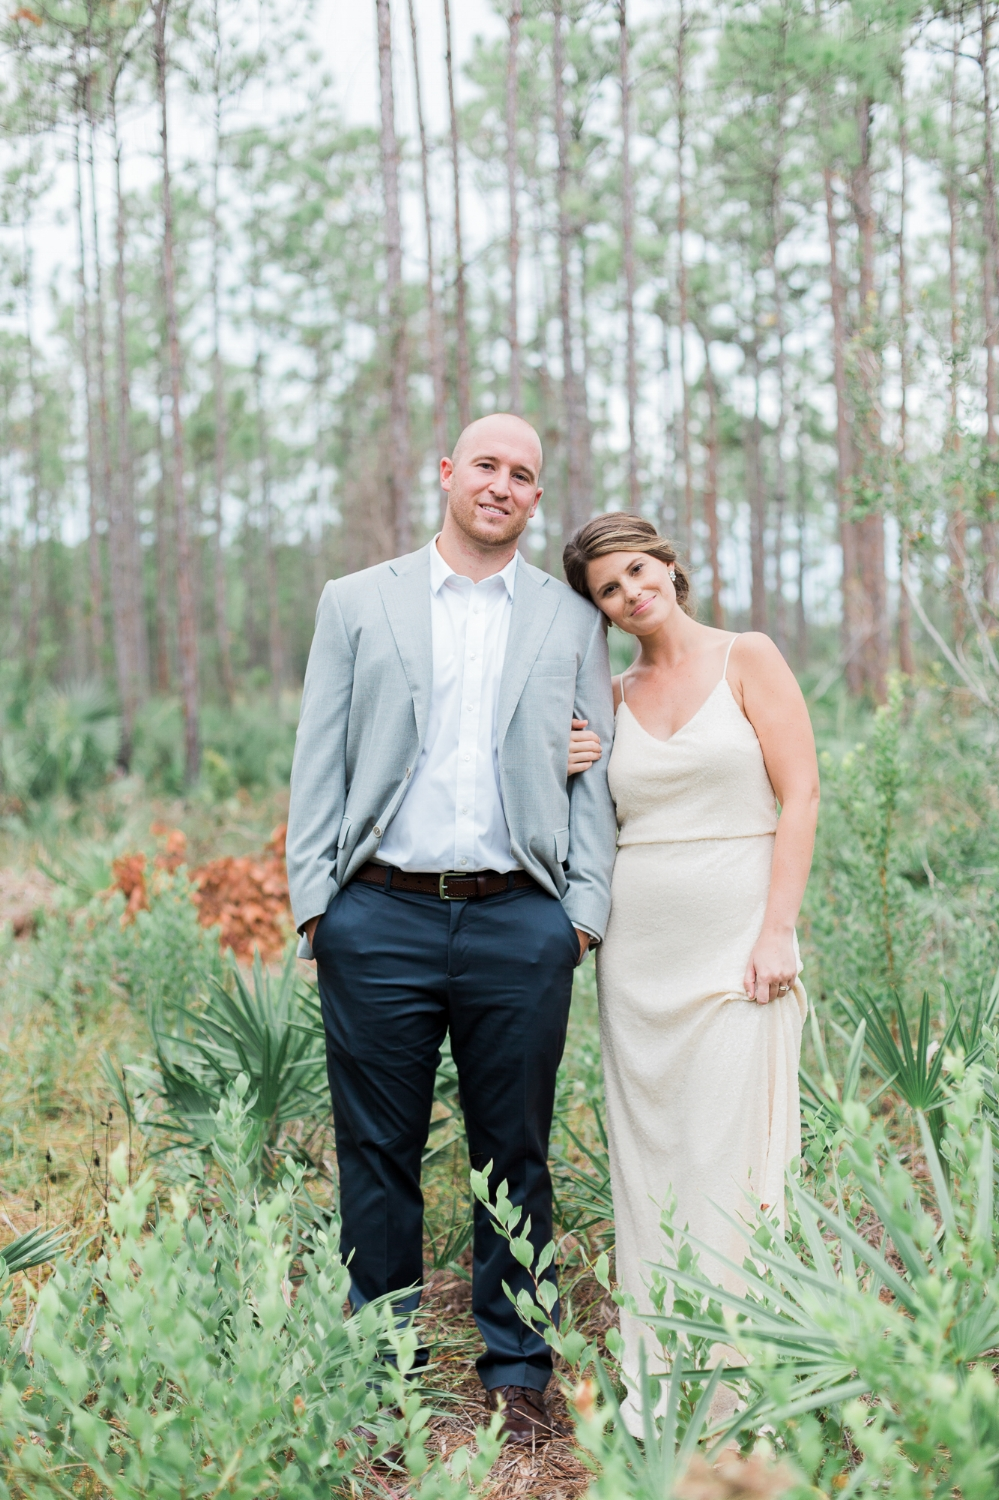 Portrait of bride and groom at outdoor rustic wedding at Oxford Eco Center